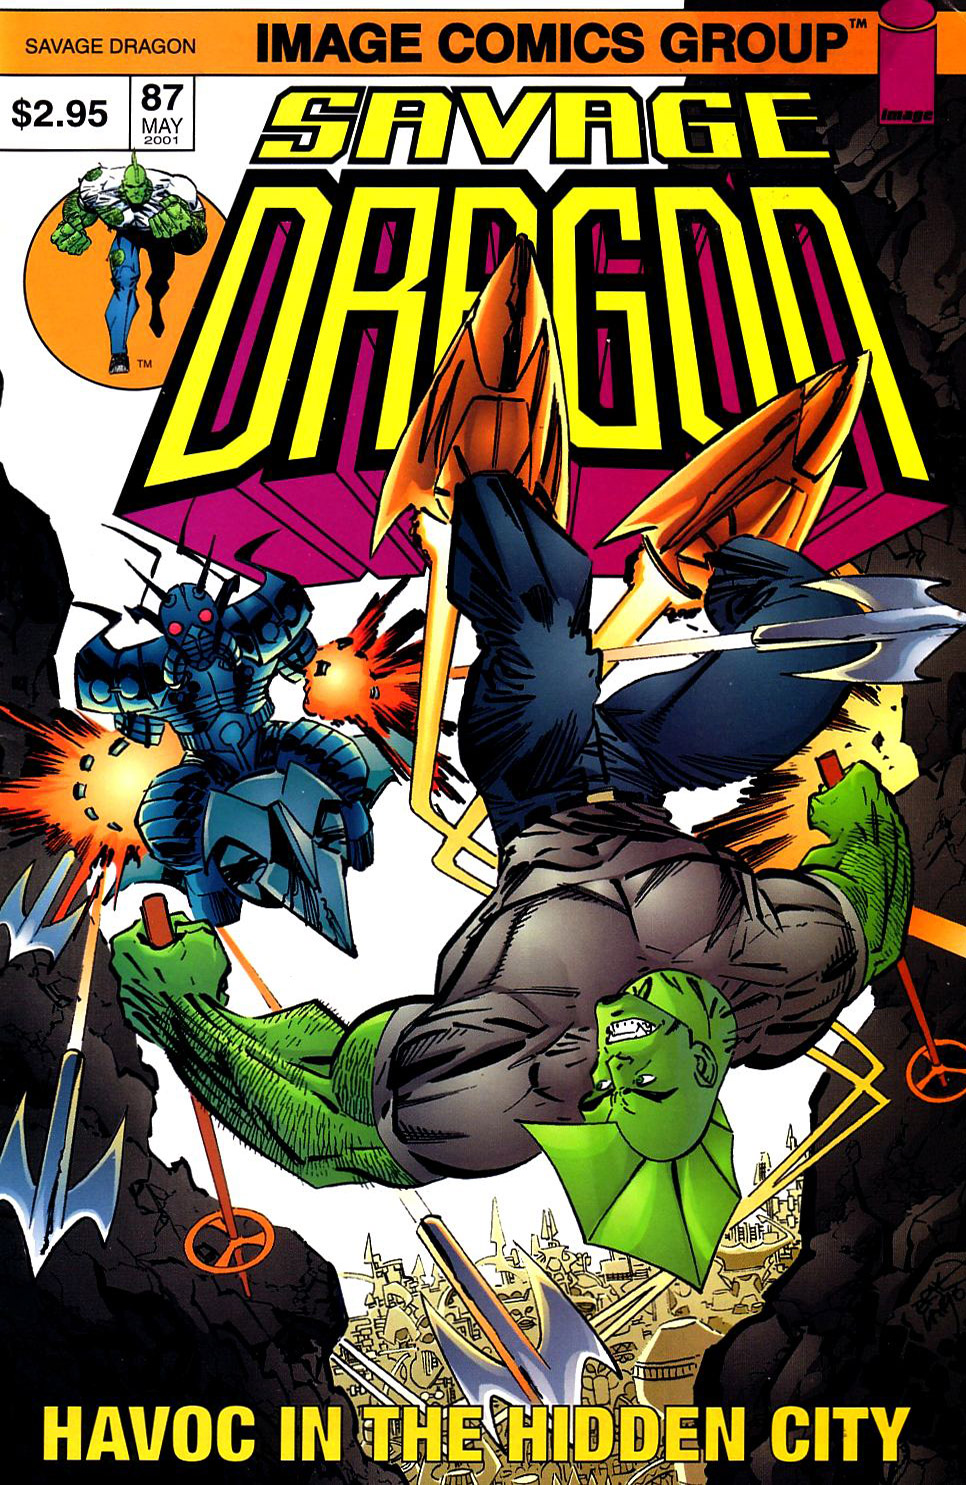 Cover Savage Dragon Vol.2 #87